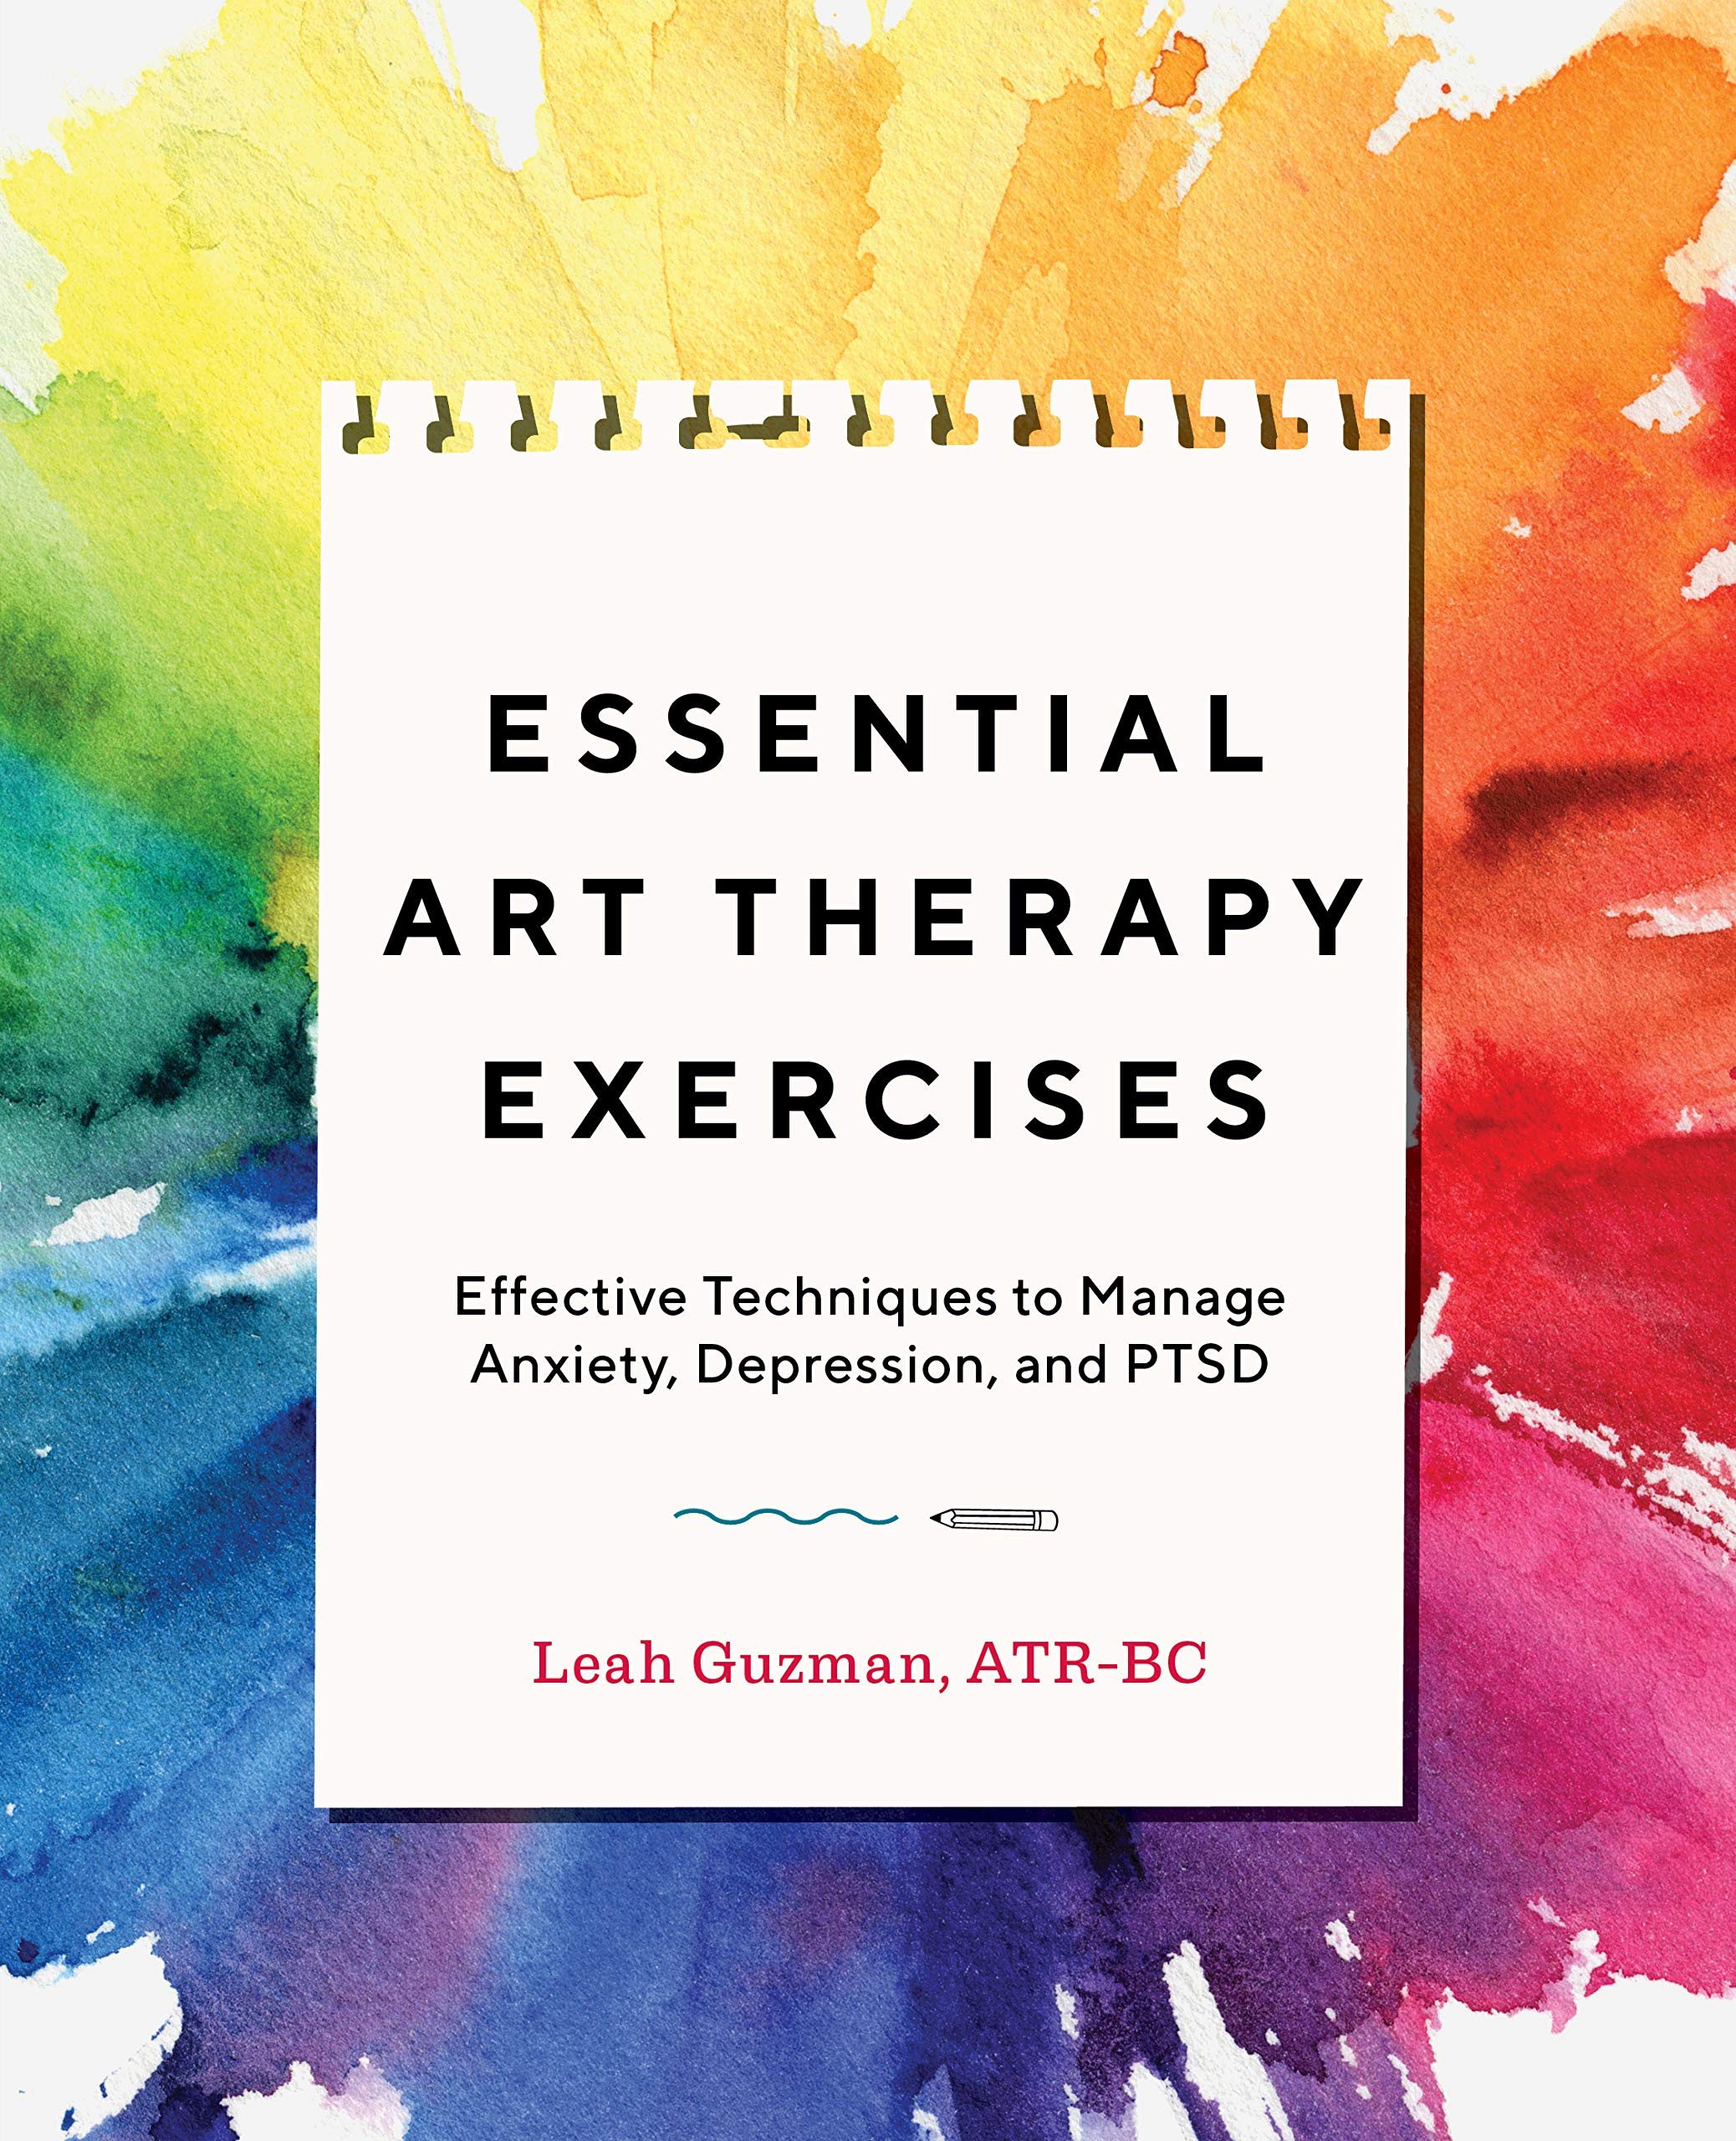 Essential Art Therapy Exercises: Effective Techniques to Manage Anxiety, Depression, and PTSD